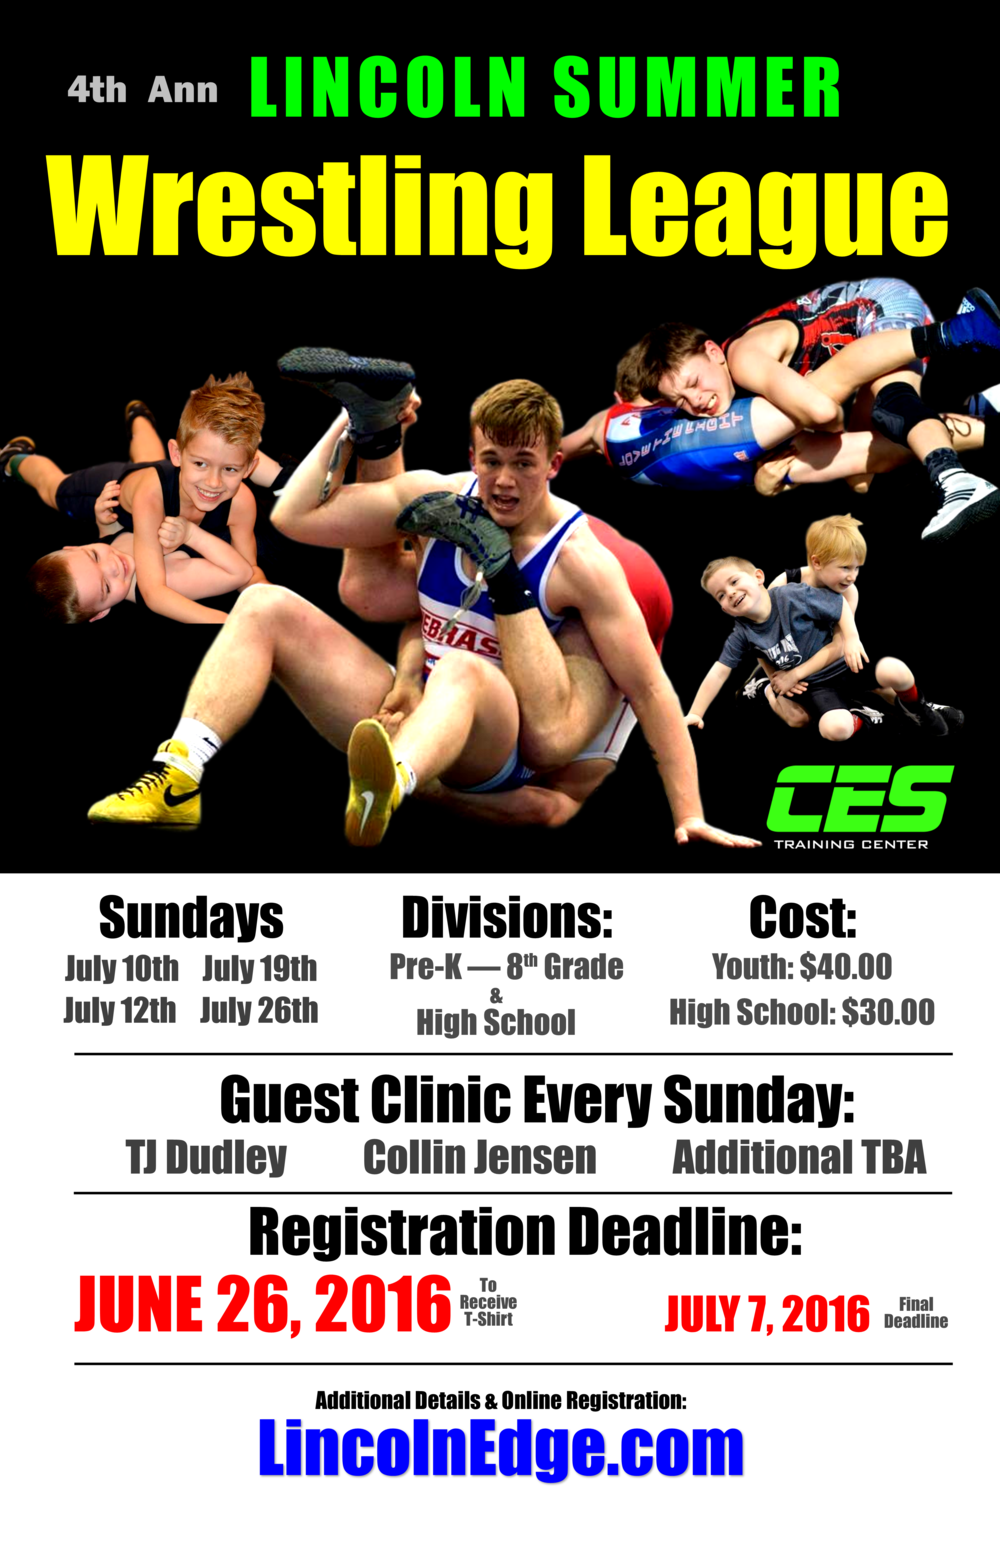 Lincoln Summer Wrestling League - Poster 11 x 17.png